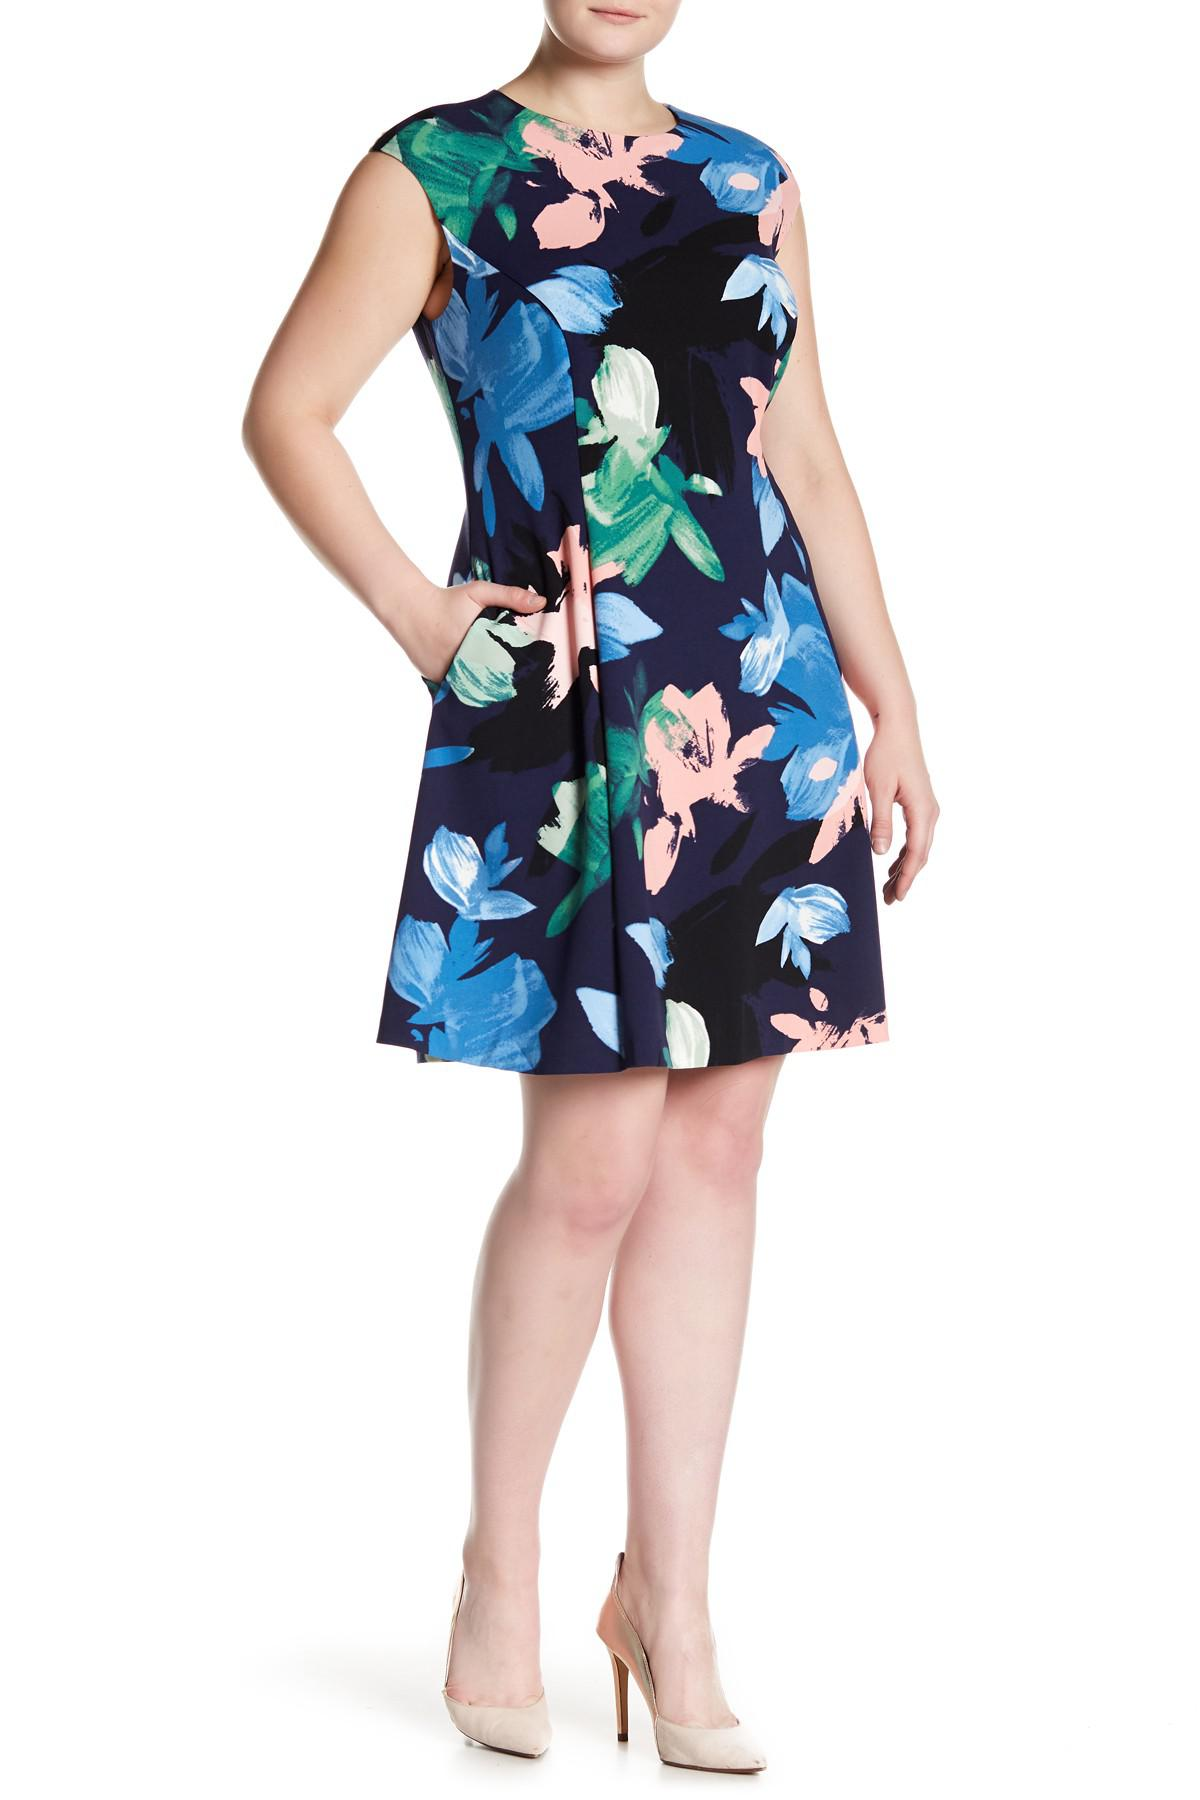 9da49a811a2b Lyst - Vince Camuto Floral Patterned Cap Sleeve Dress (plus Size) in ...